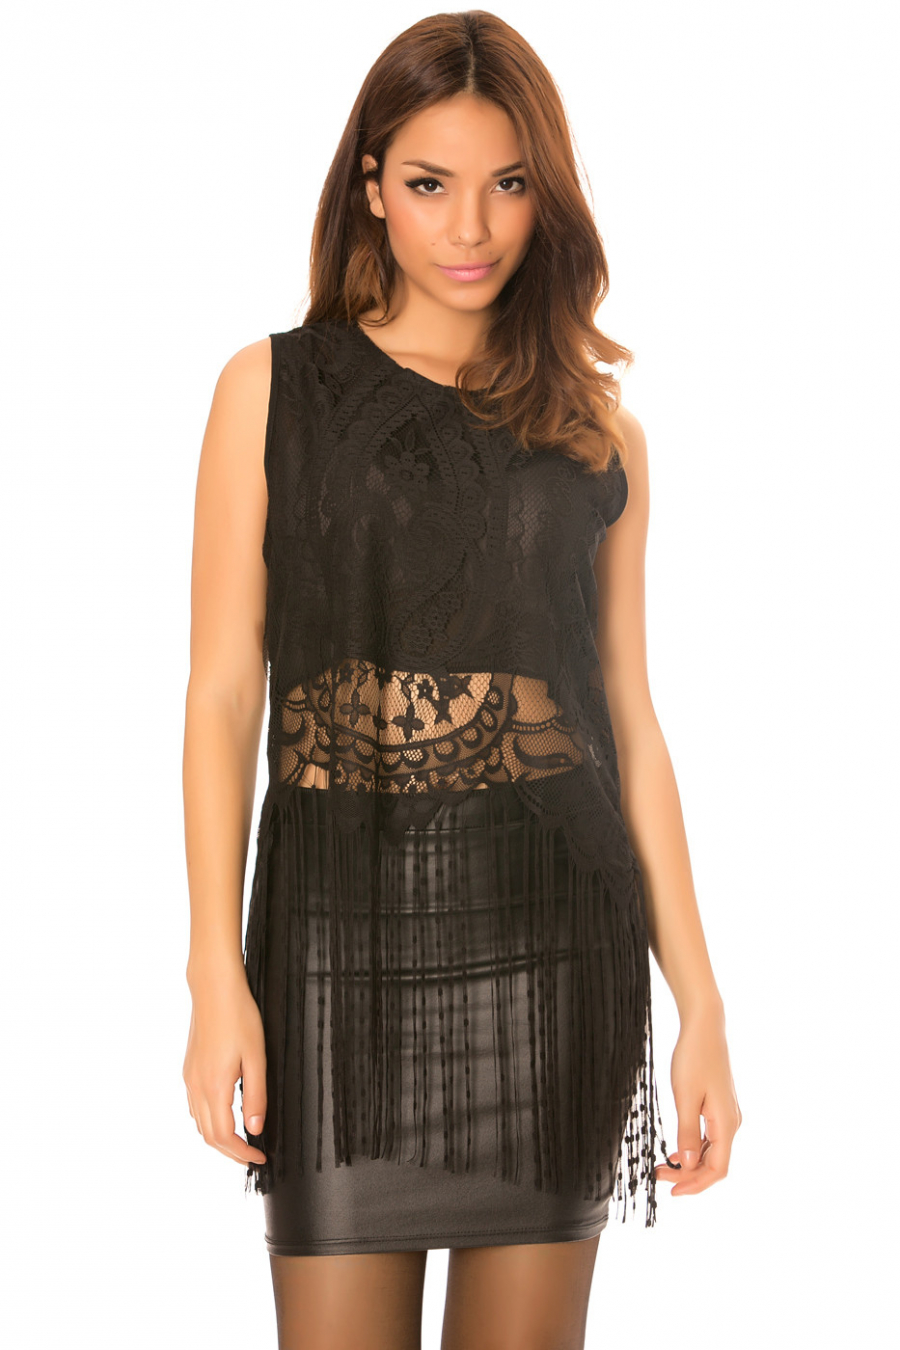 Black lace top with long fringes. C-267